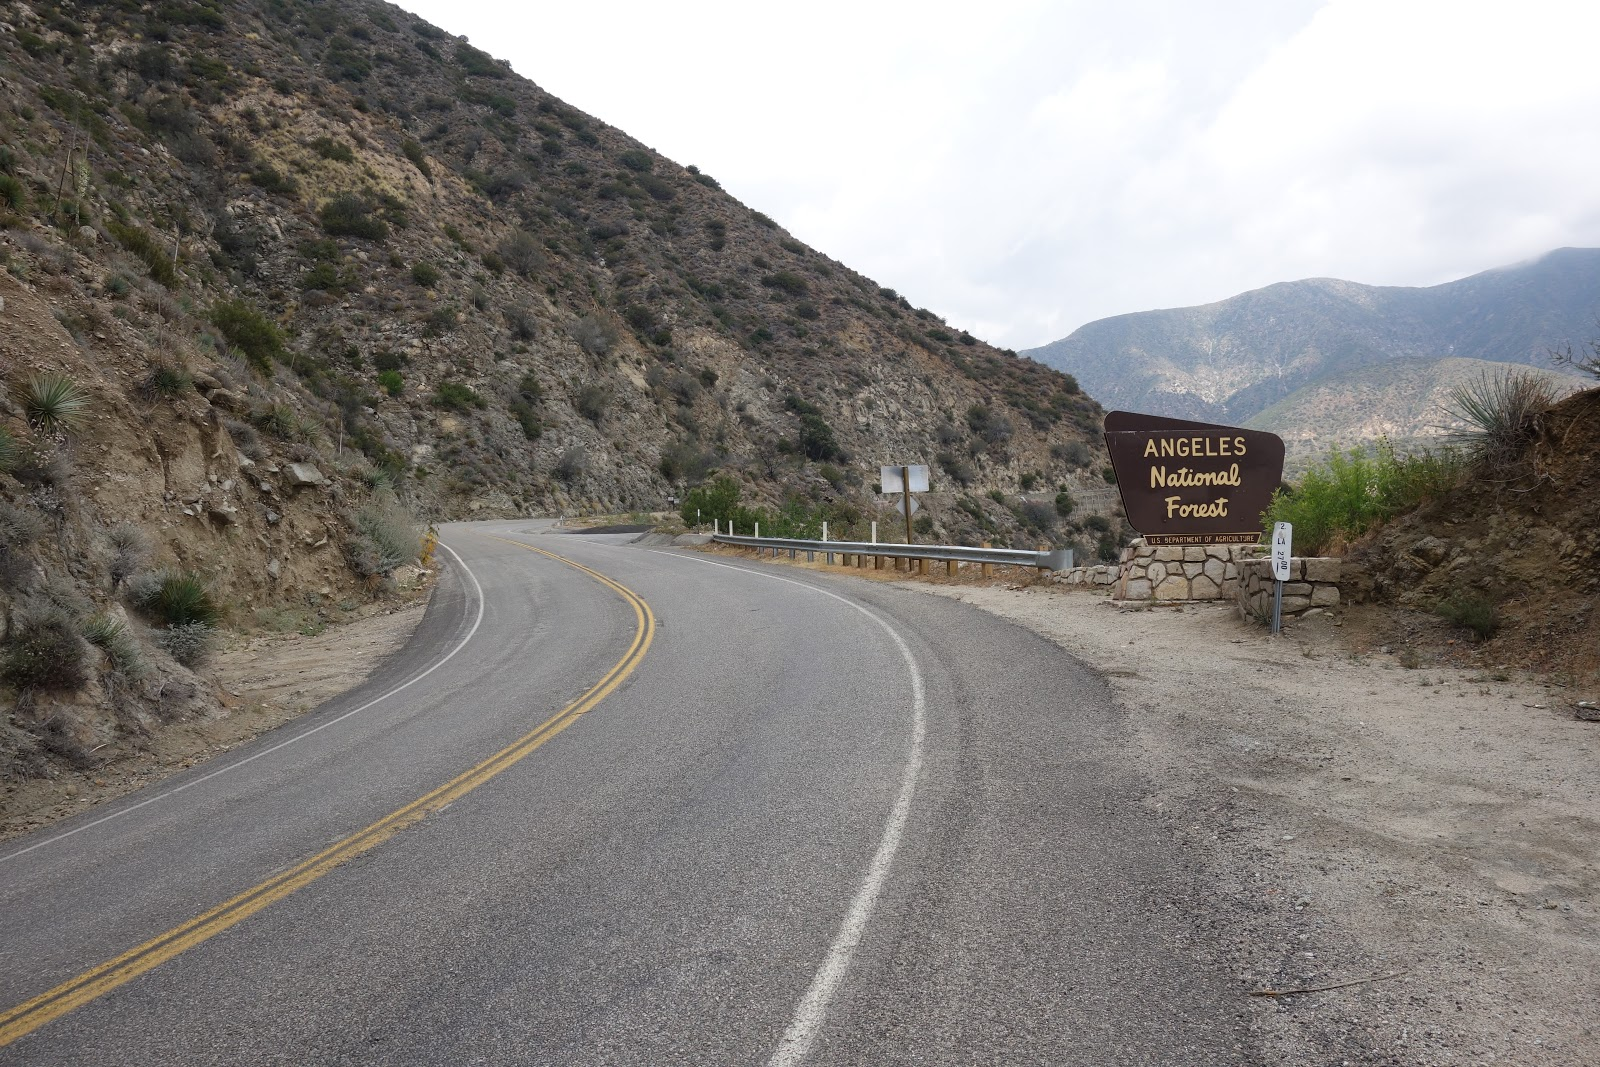 Angeles National Forest road sign on Hwy 2 during bicycle ride to Mt. Wilson